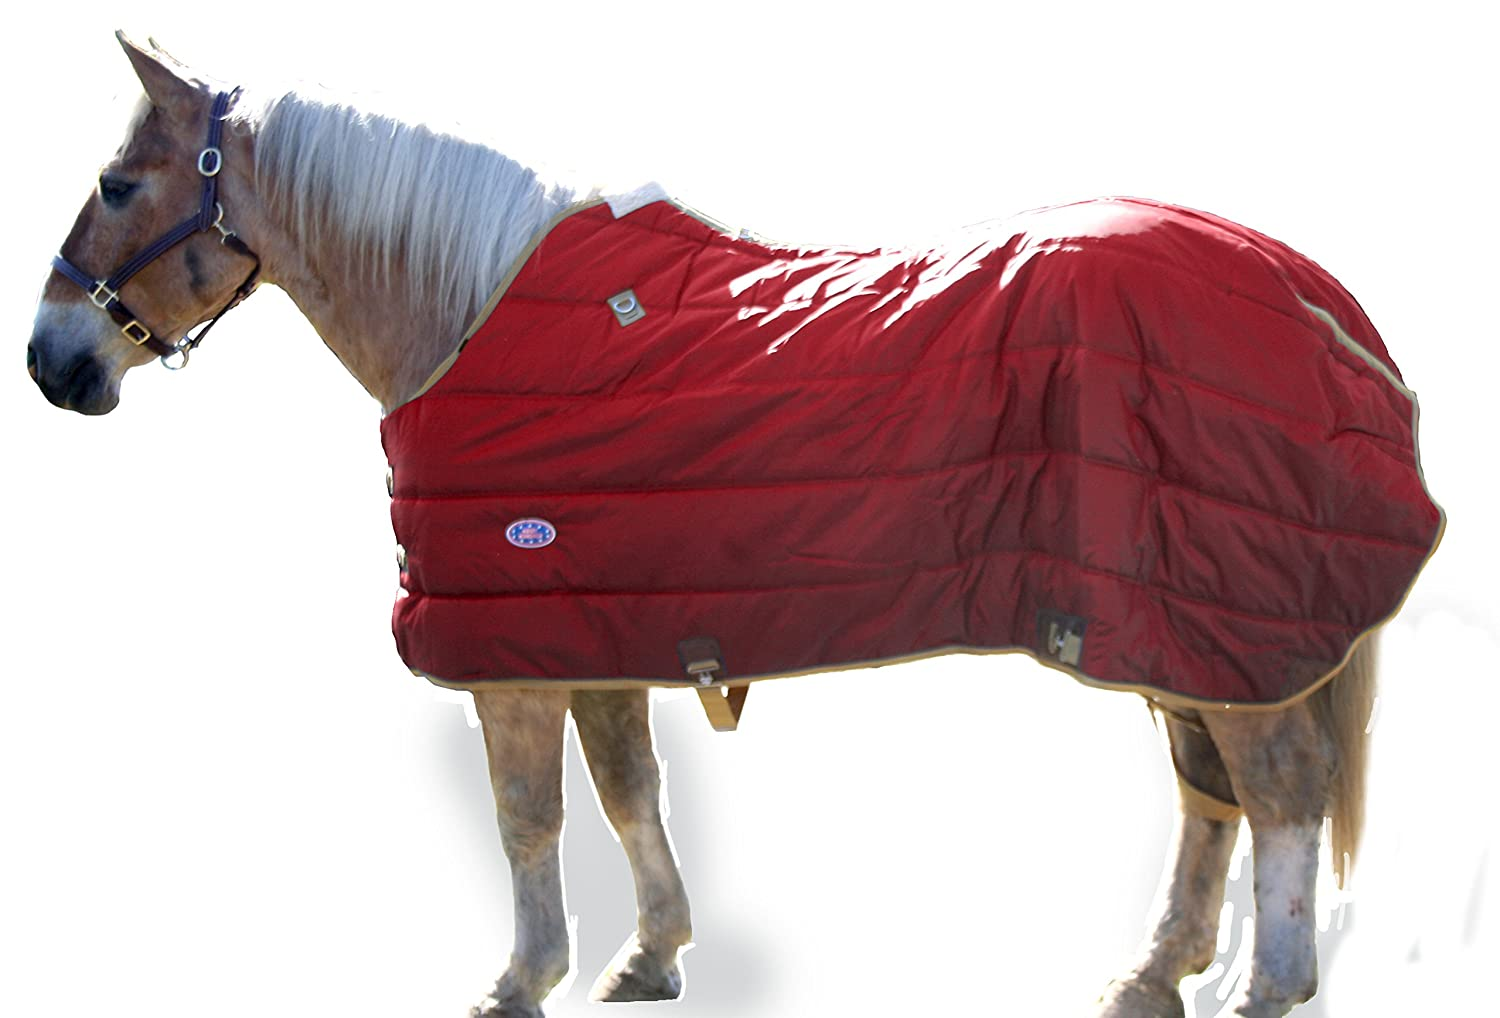 Derby Originals 420D 300G West Style Winter Horse Stable Blanket 80-8017BL-72-P